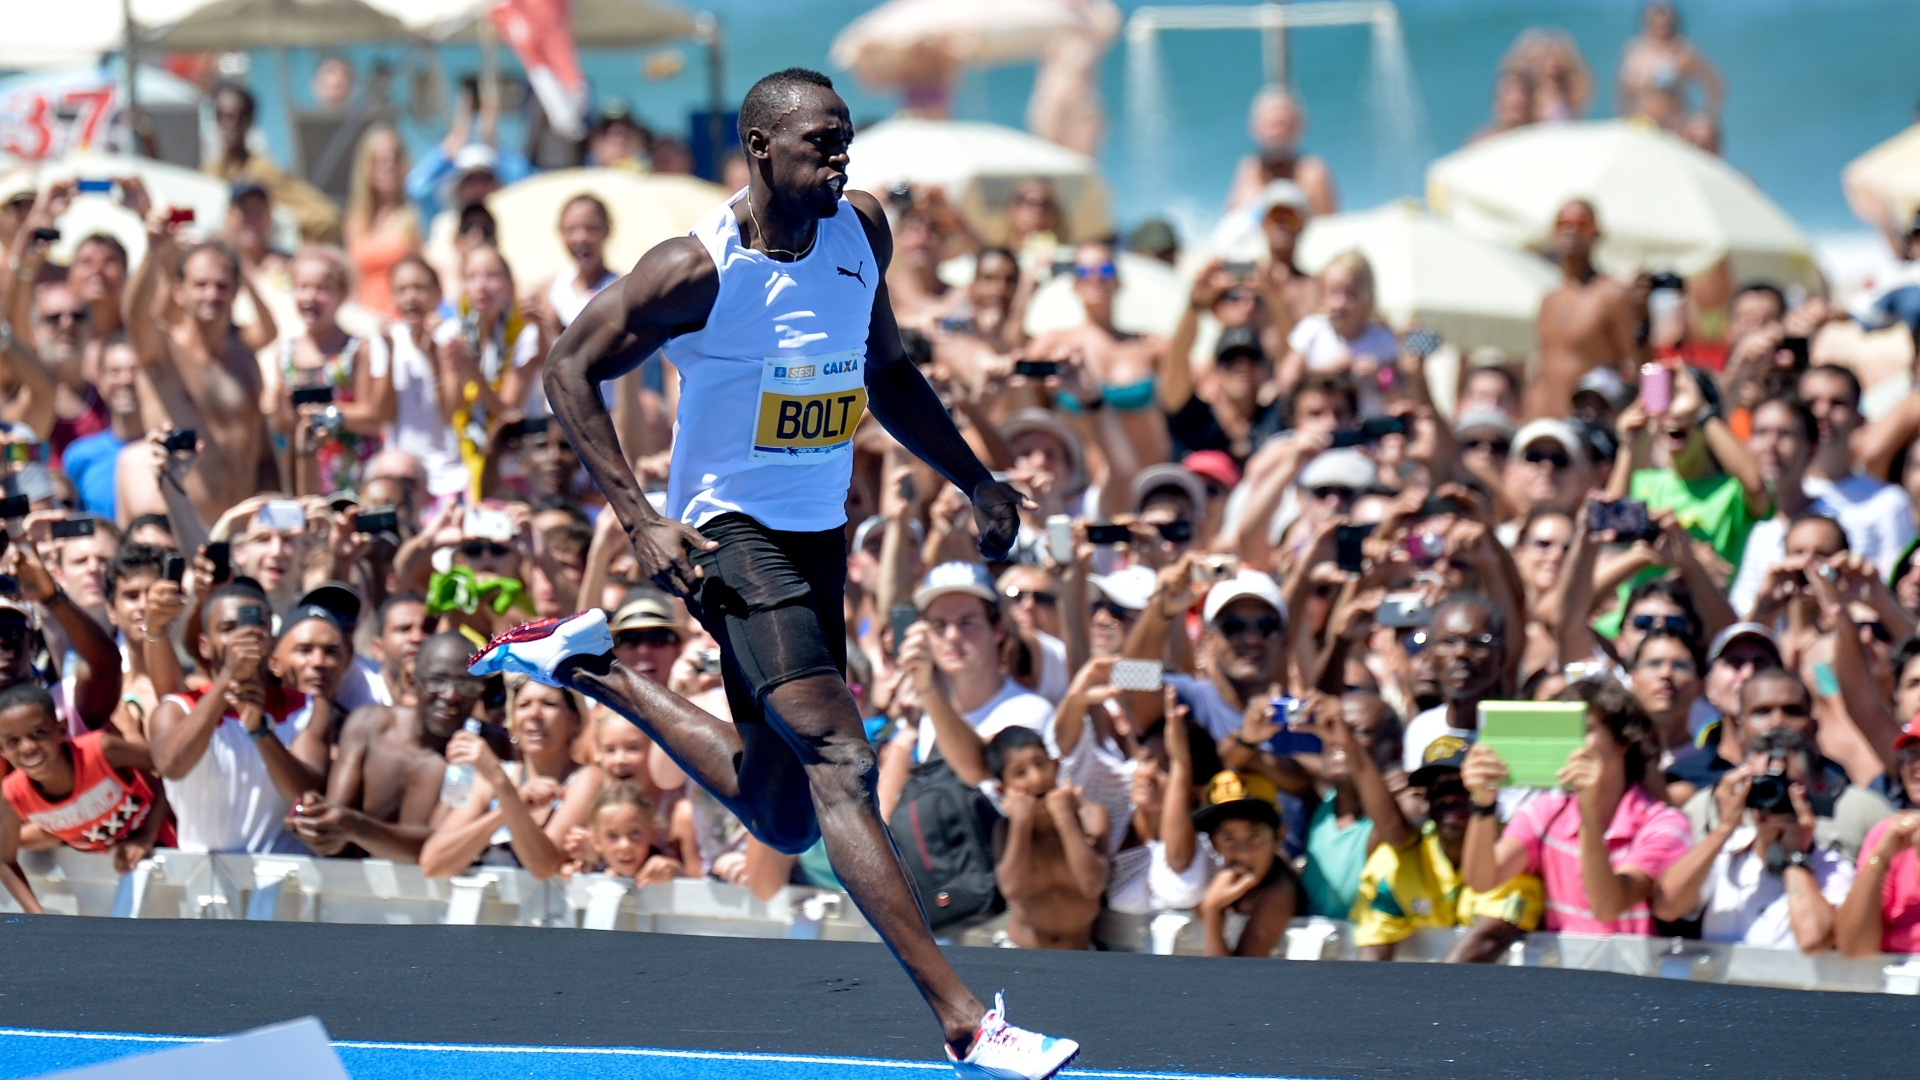 31.mar.2013 - Bolt vence desafio de 150m no Rio de Janeiro, mas sem bater recorde